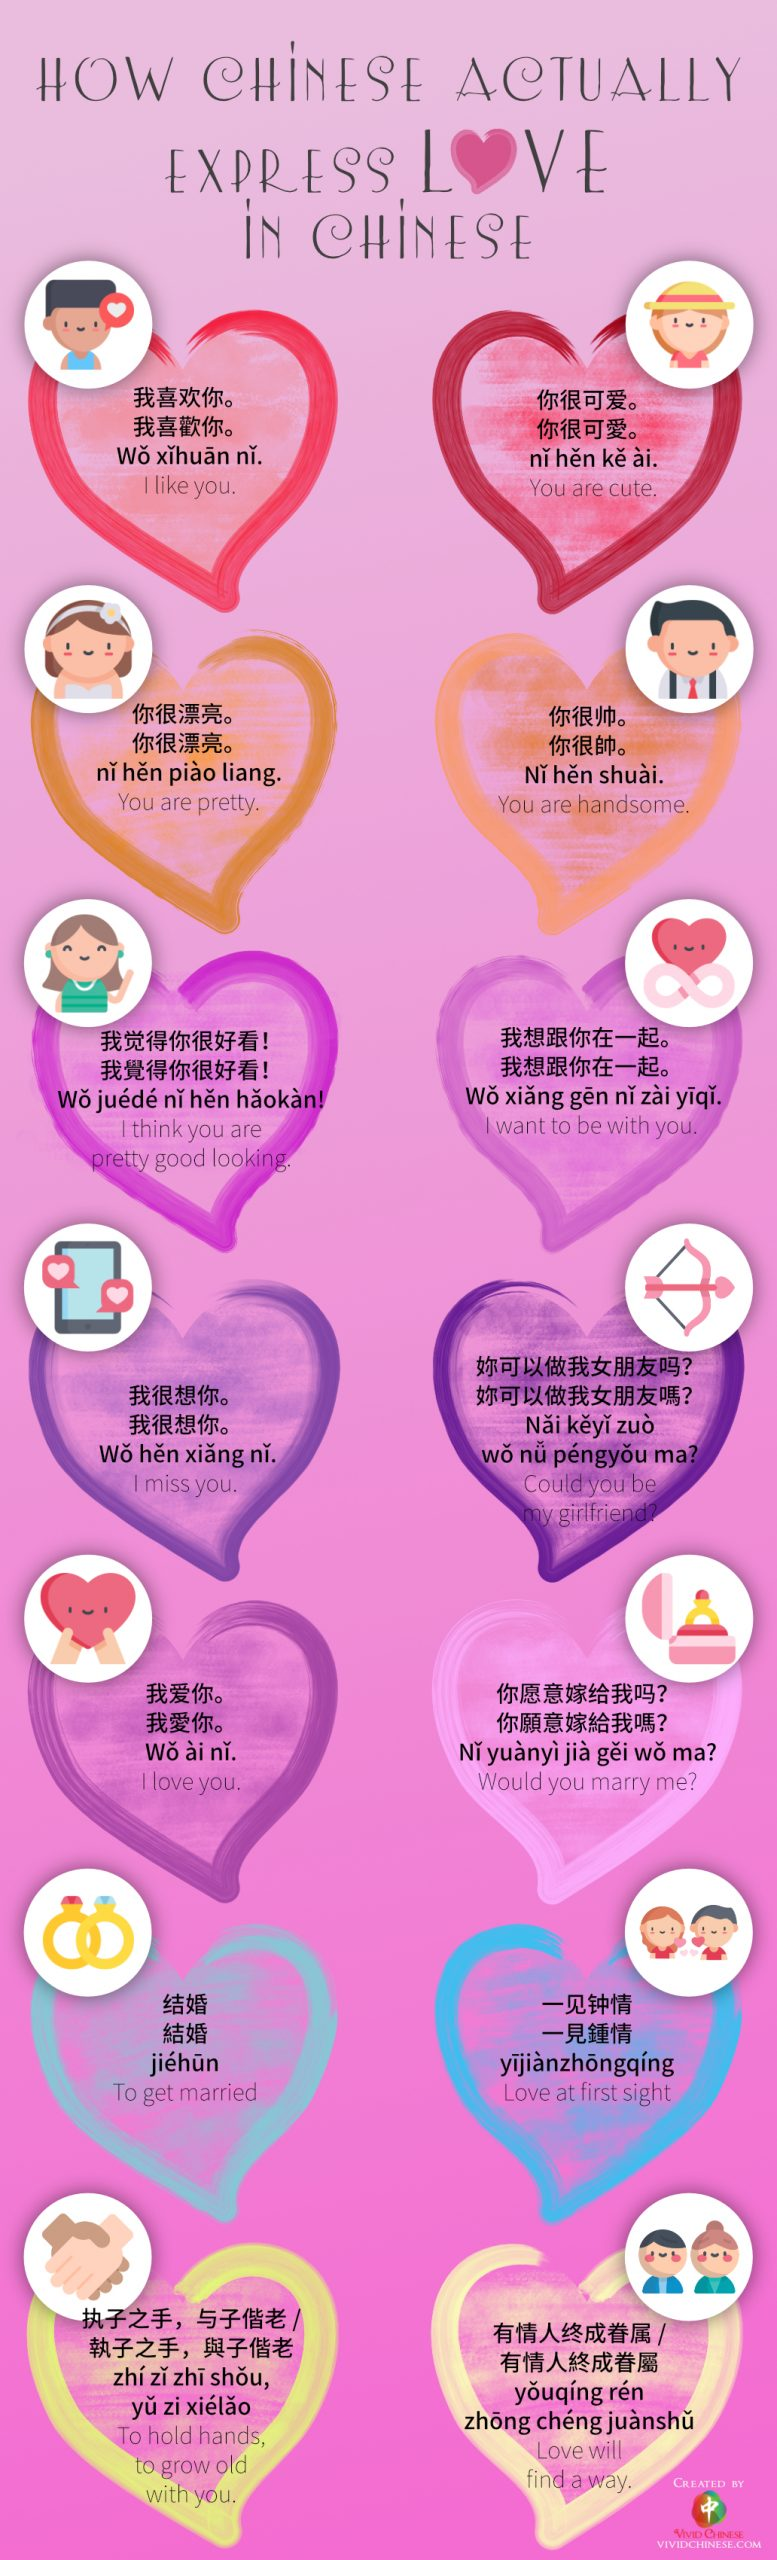 How Chinese Actually Express love In Mandarin Chinese infographic